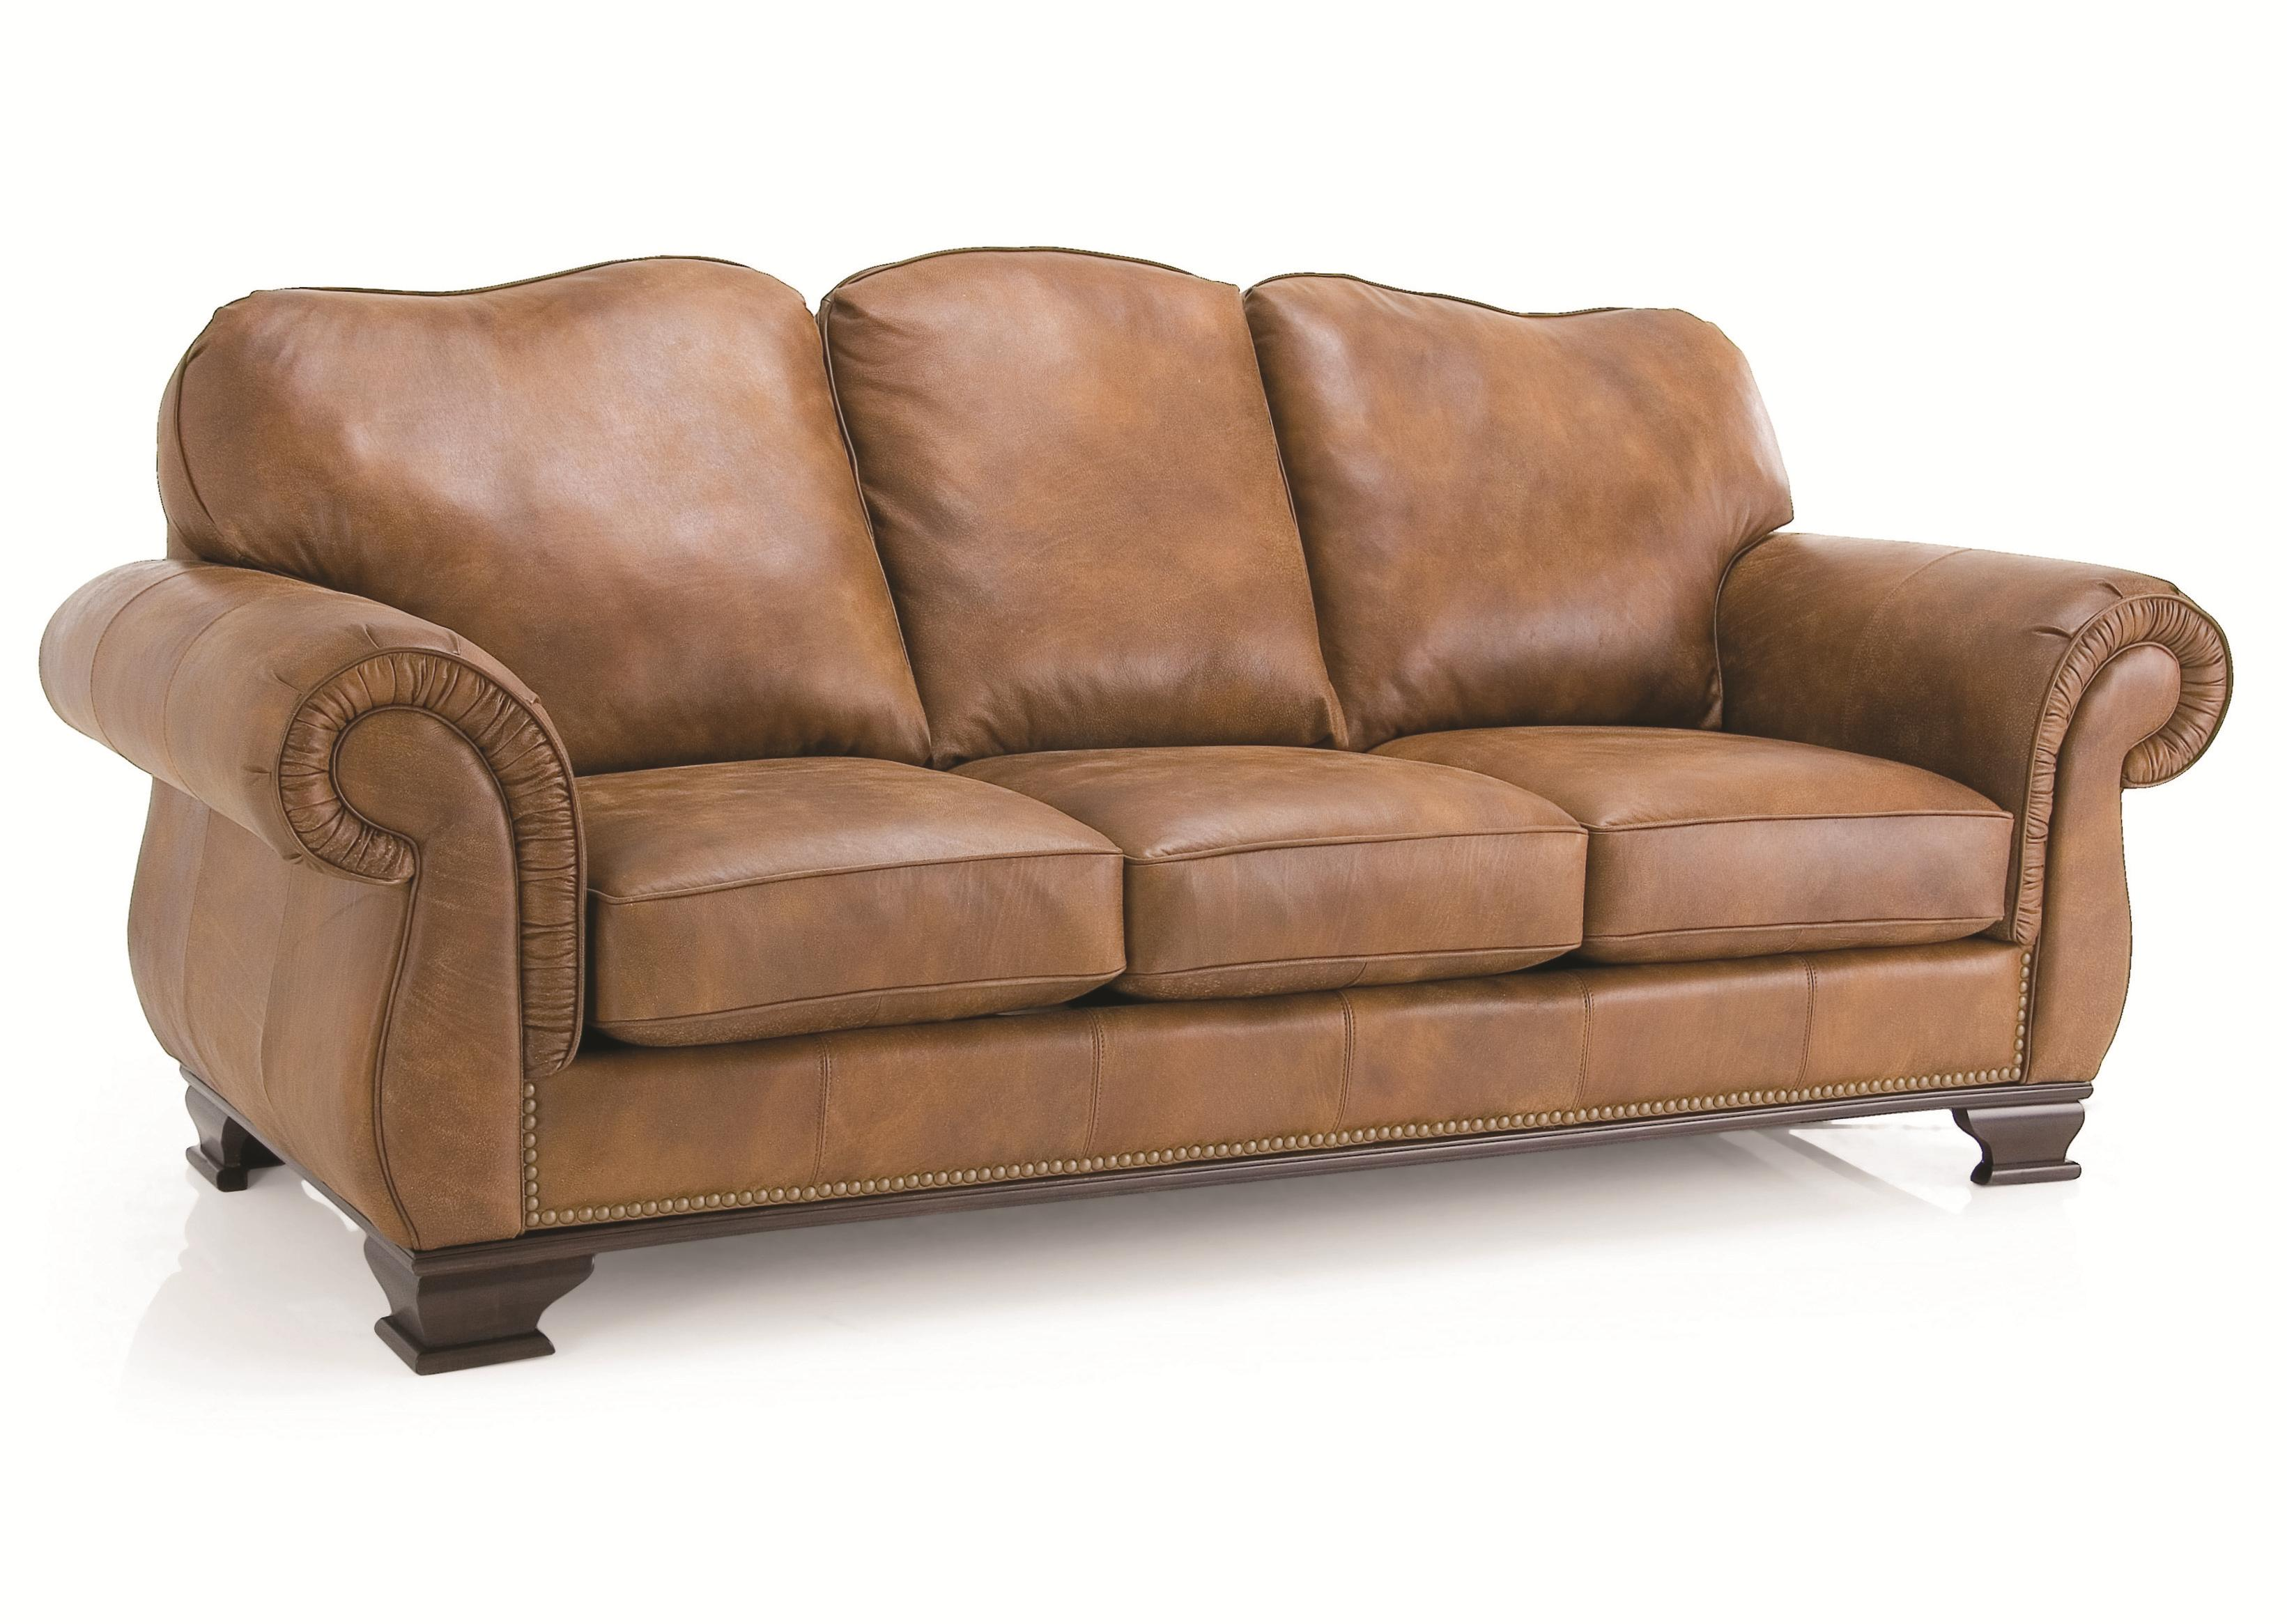 3933 Sofa by Decor-Rest at Reid's Furniture